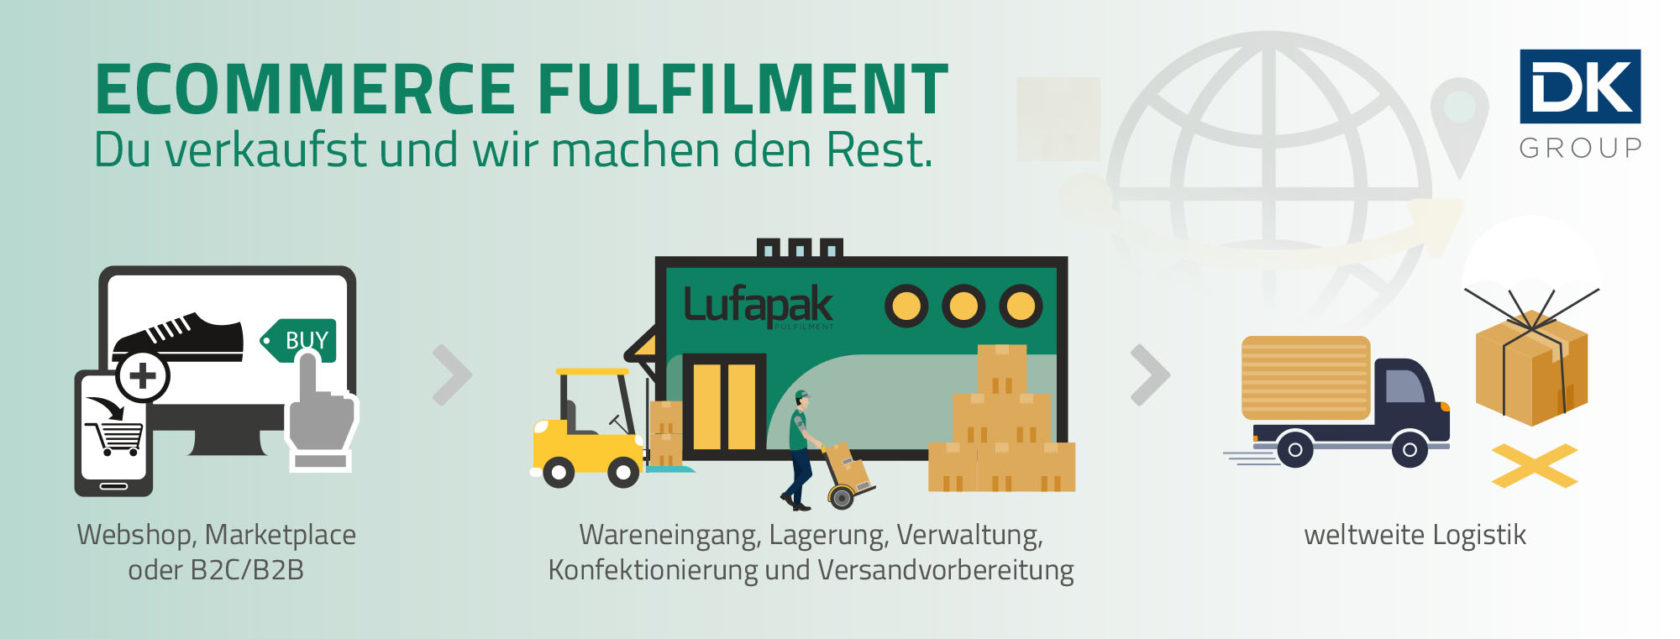 Ecommerce Fulfillment Service Center  Lufapak Fulfillment. More Than Pet Insurance Claim Form. Voice Verification Software Dui Laws In Utah. Dallas Home Inspections Platinum Vs Palladium. Advance Carpet Cleaning New York Meeting Space. Physical Therapy Schools In Tx. Education Needed For Interior Design. Accounting Software For Churches Free. Model Of Supply Chain Management